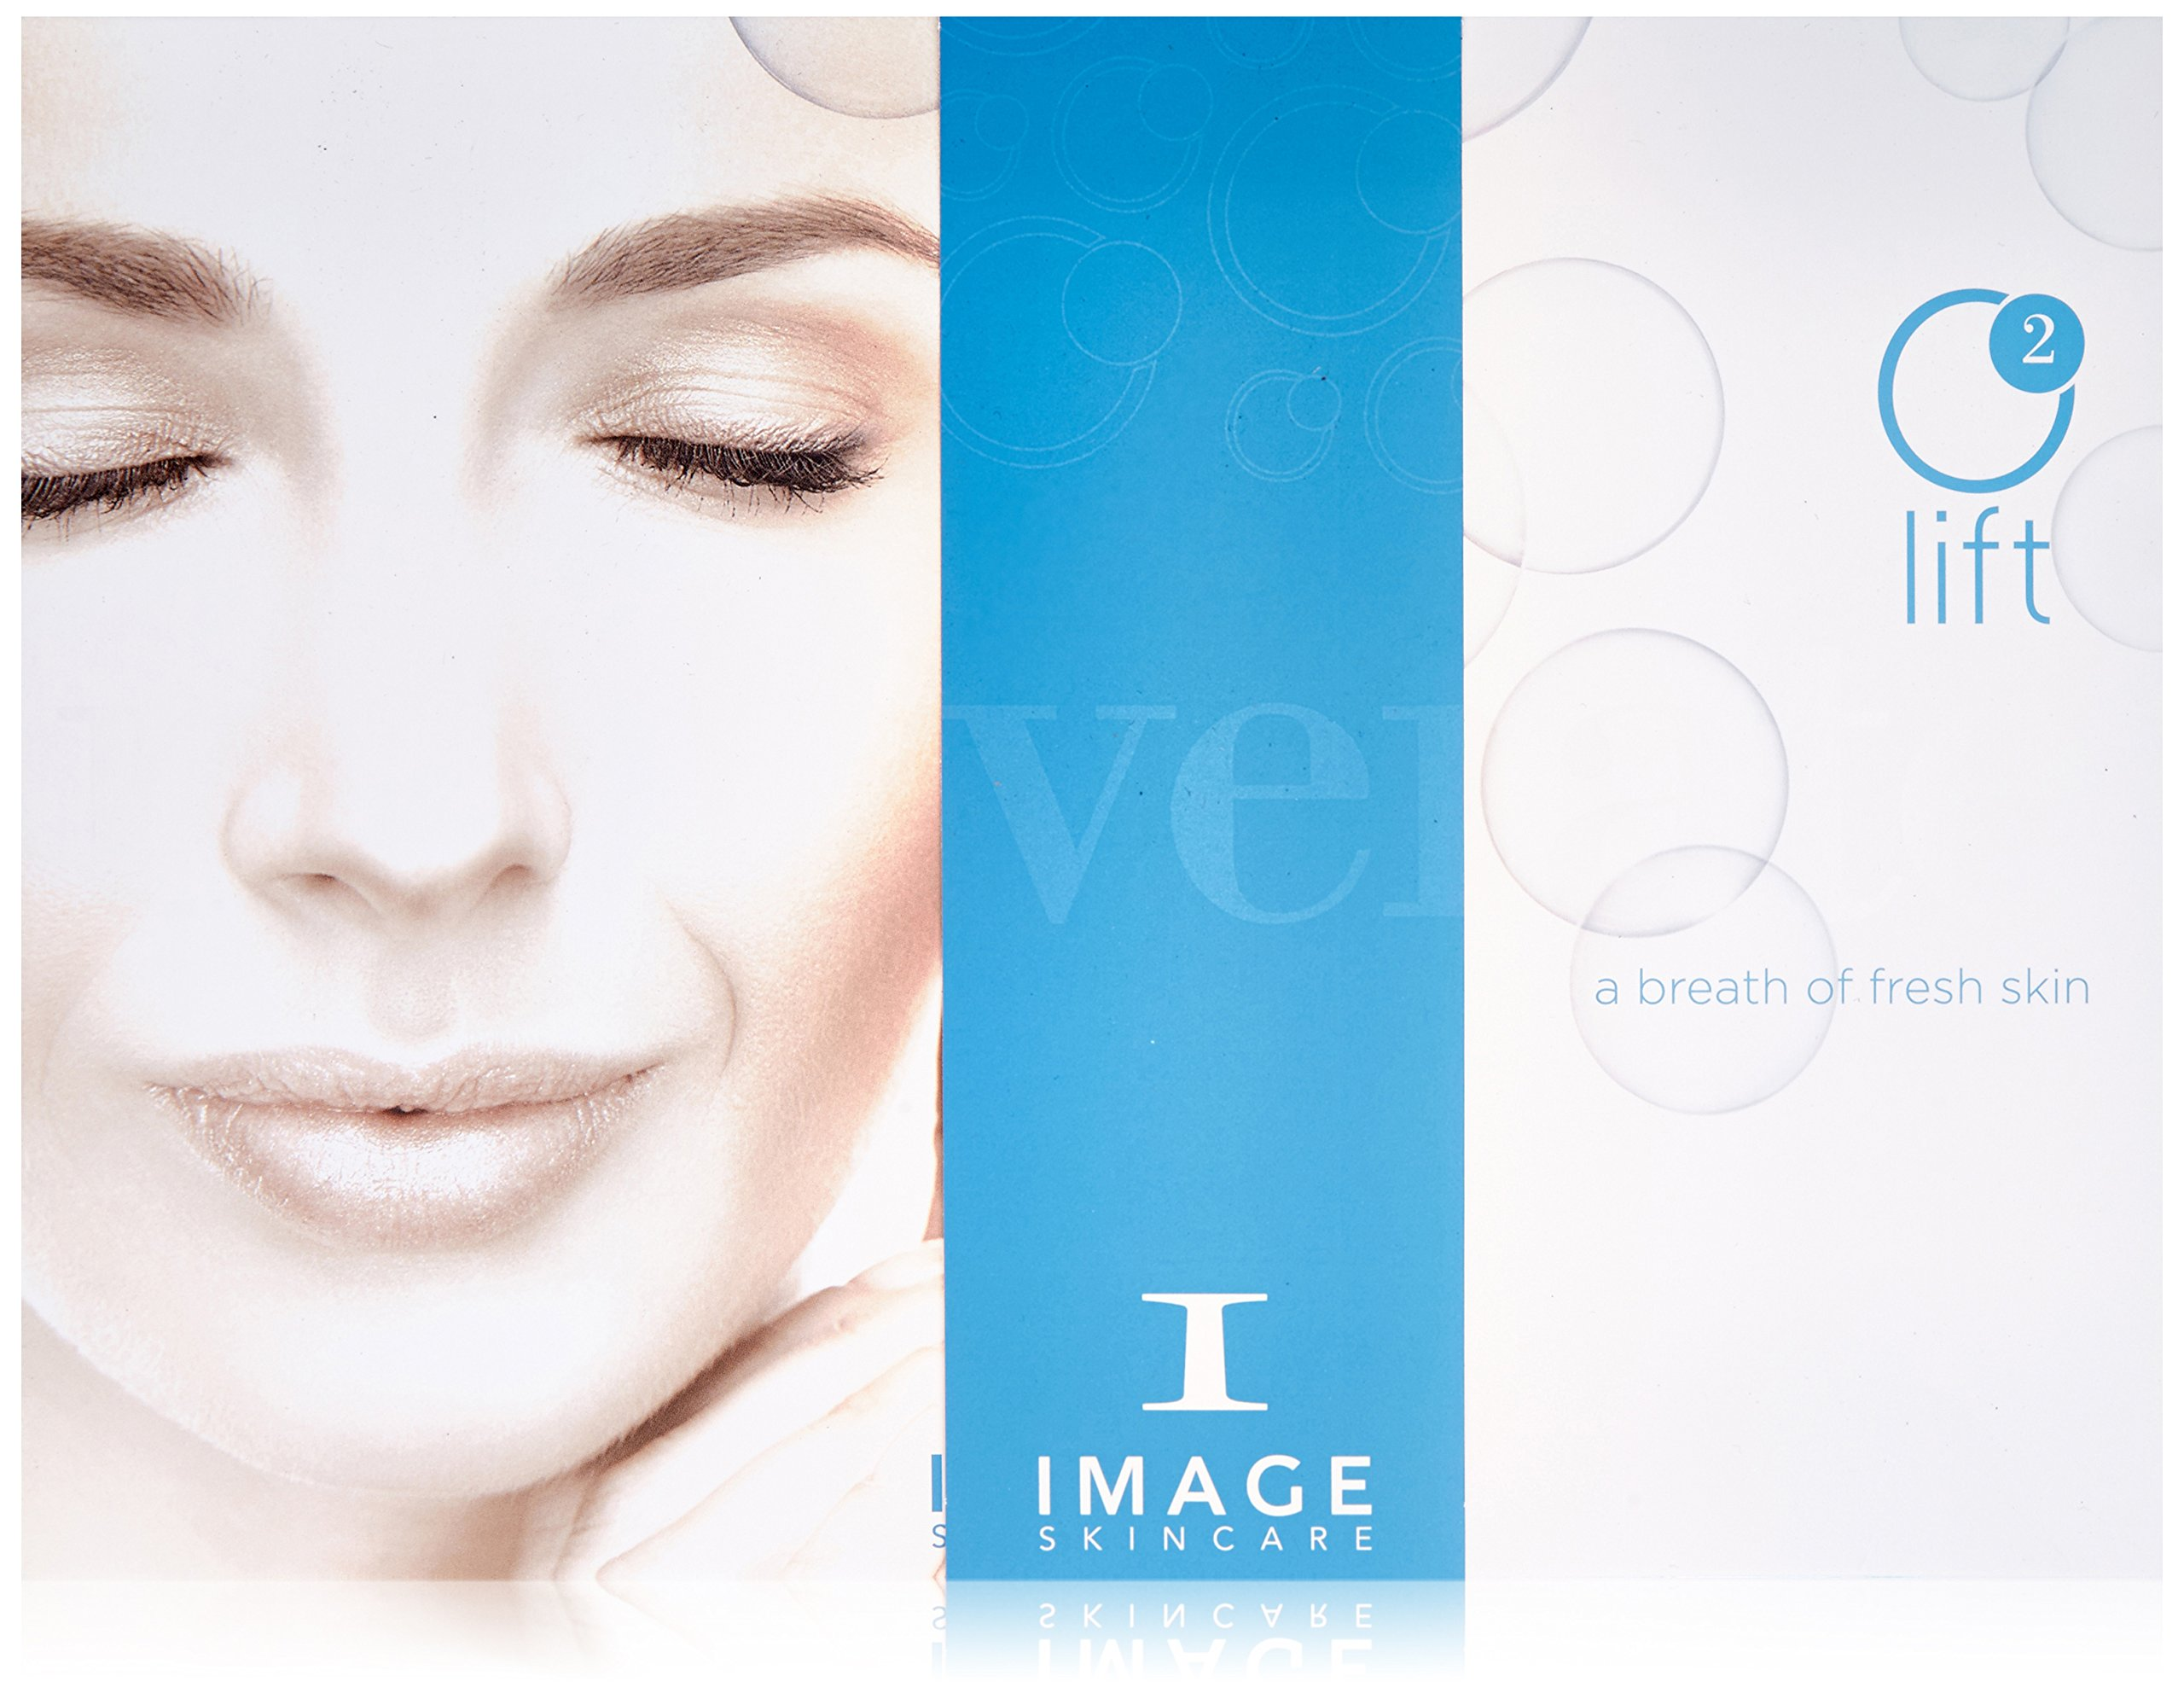 Image Skincare O2 Lift Kit